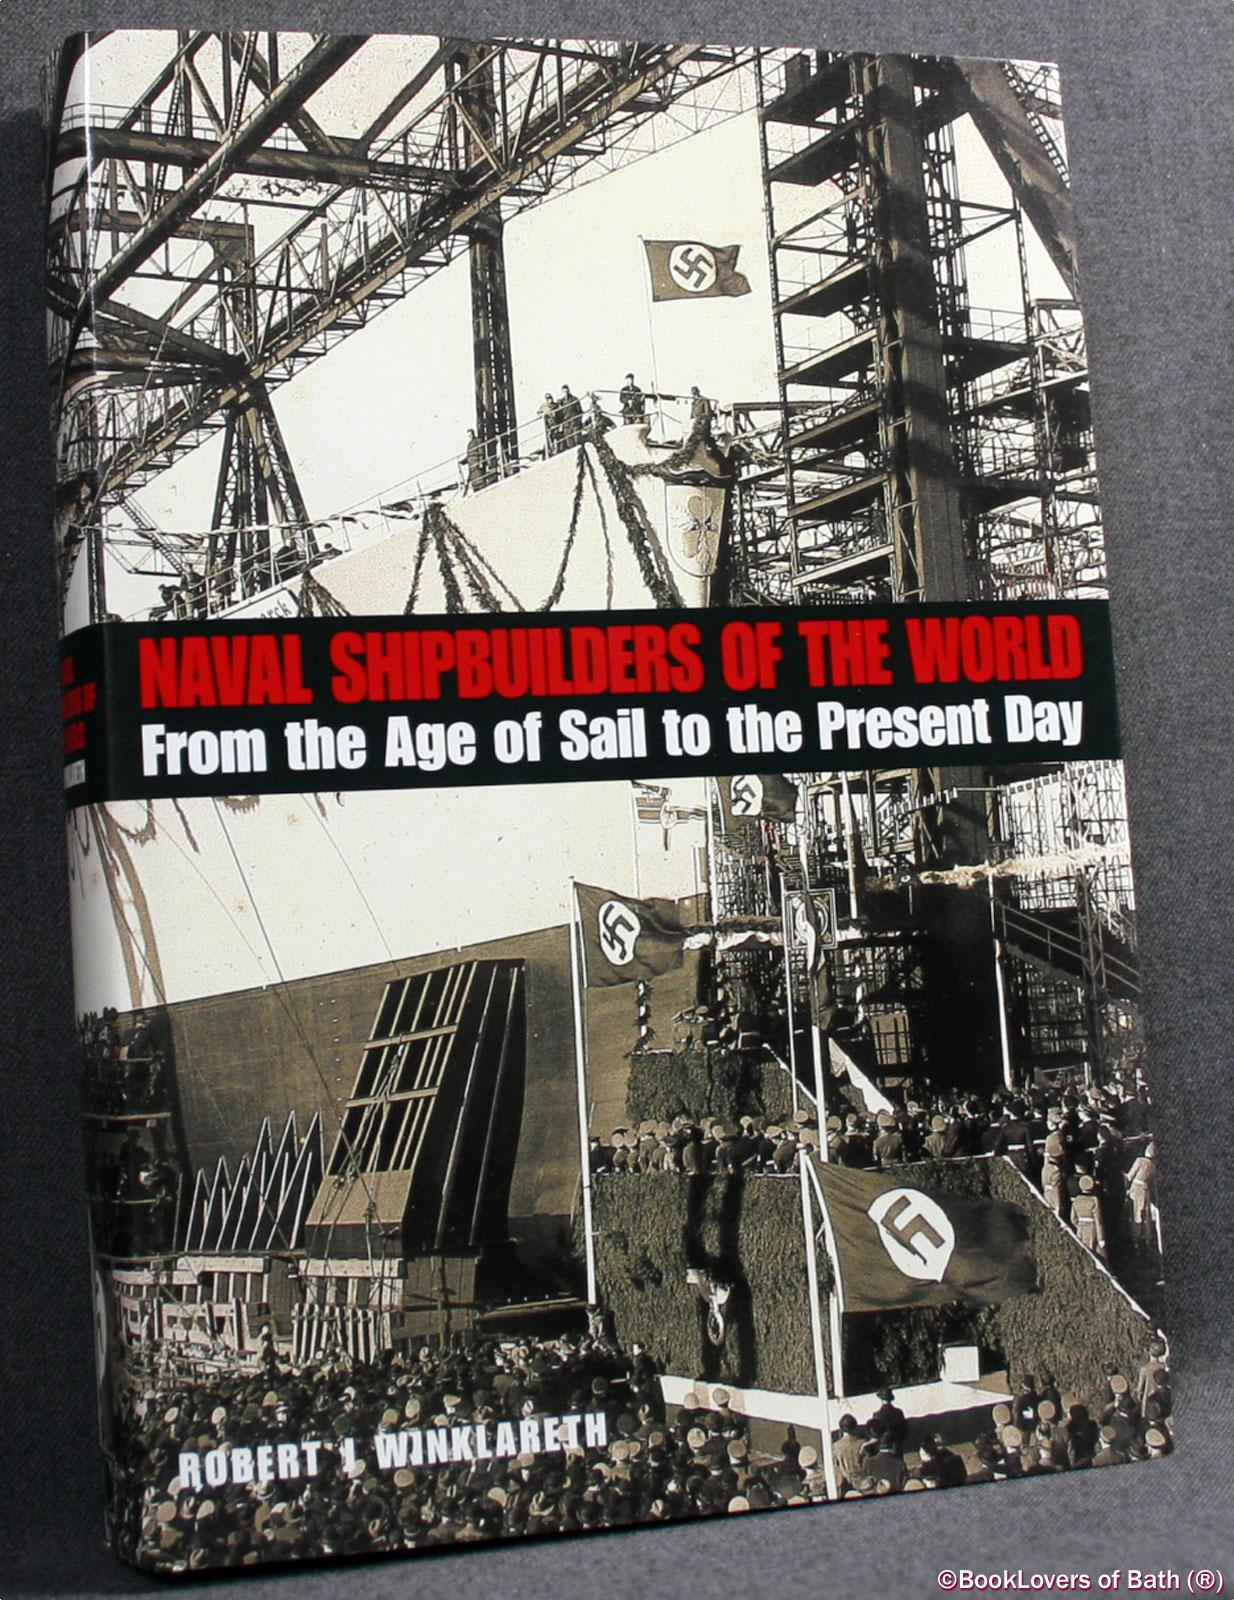 Naval Shipbuilders of the World: From the Age of Sail to the Present Day - Robert J. Winklareth